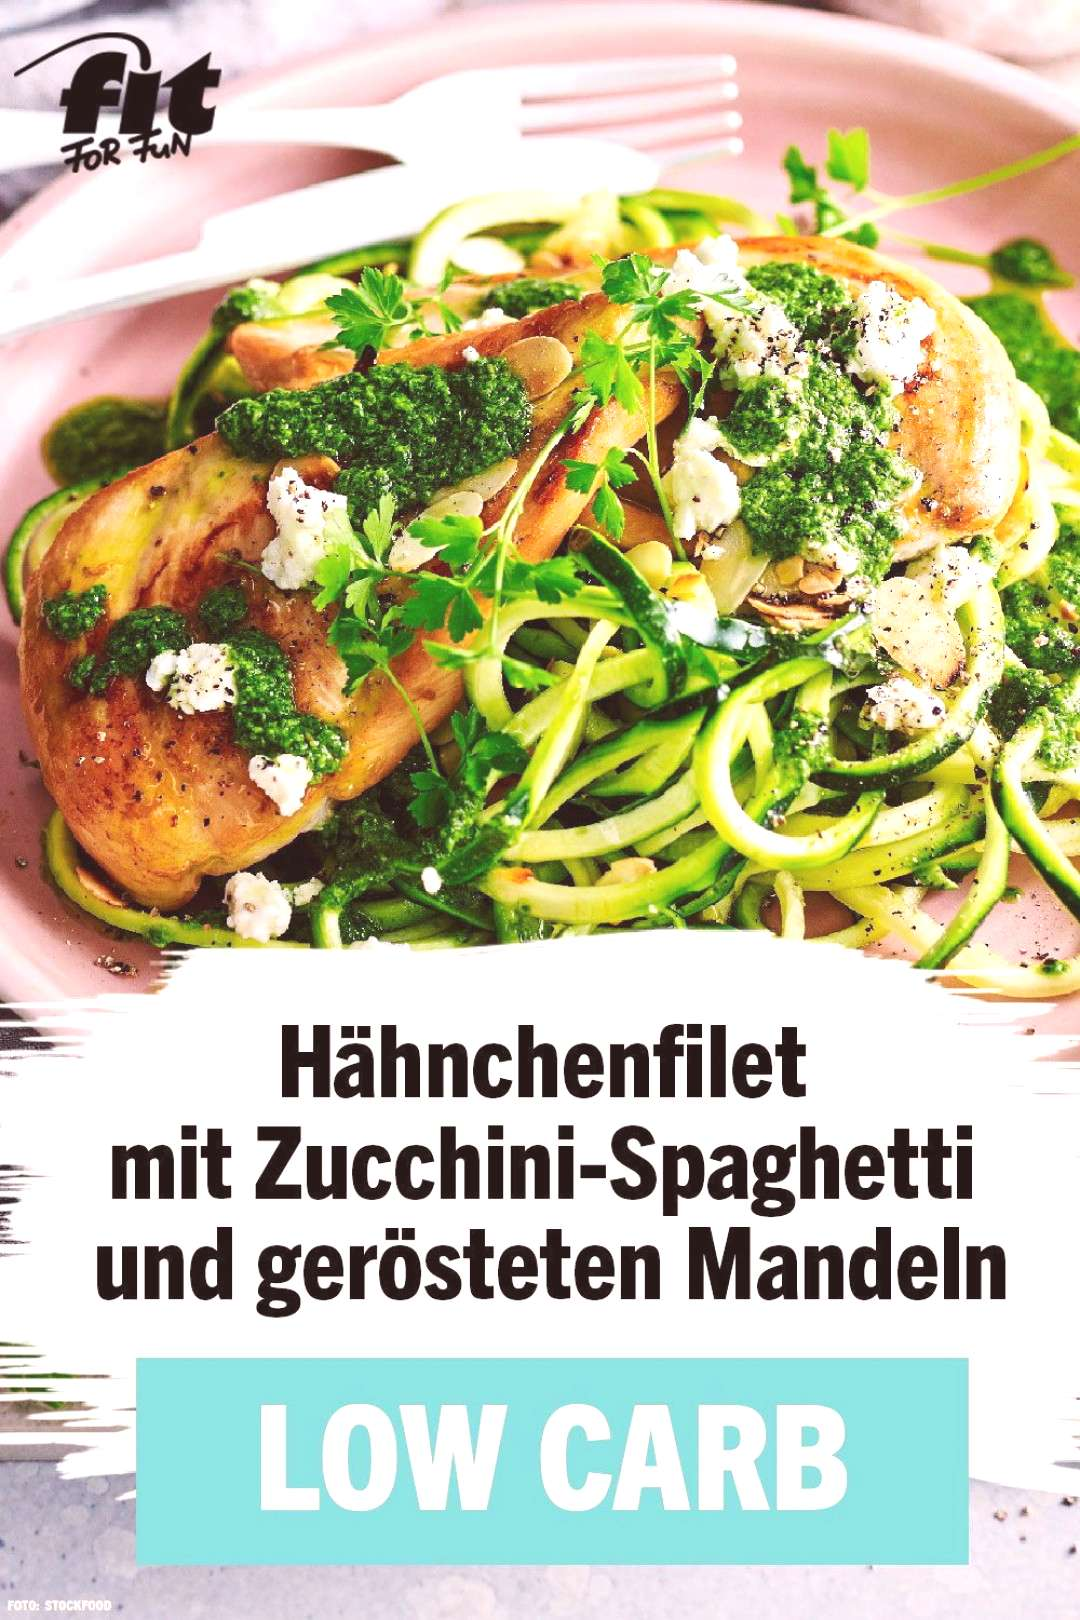 Chicken fillet with zucchini spaghetti and roasted almonds Recipe - FIT FOR FUN#almonds